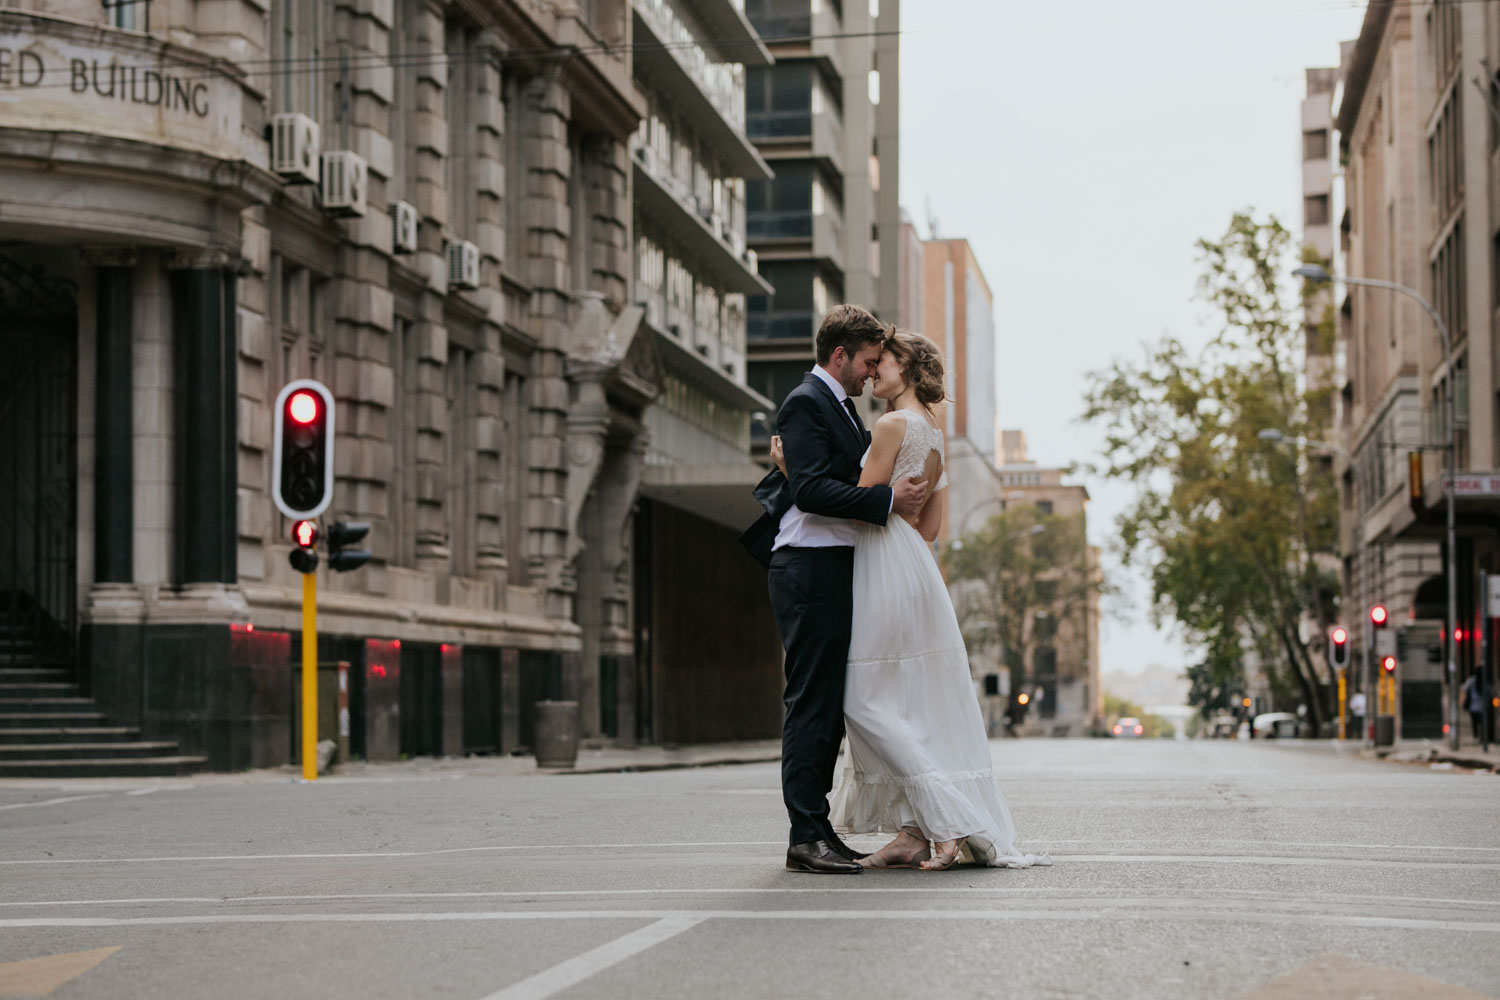 Bride And Groom Dance In Road In Vancouver City Streets